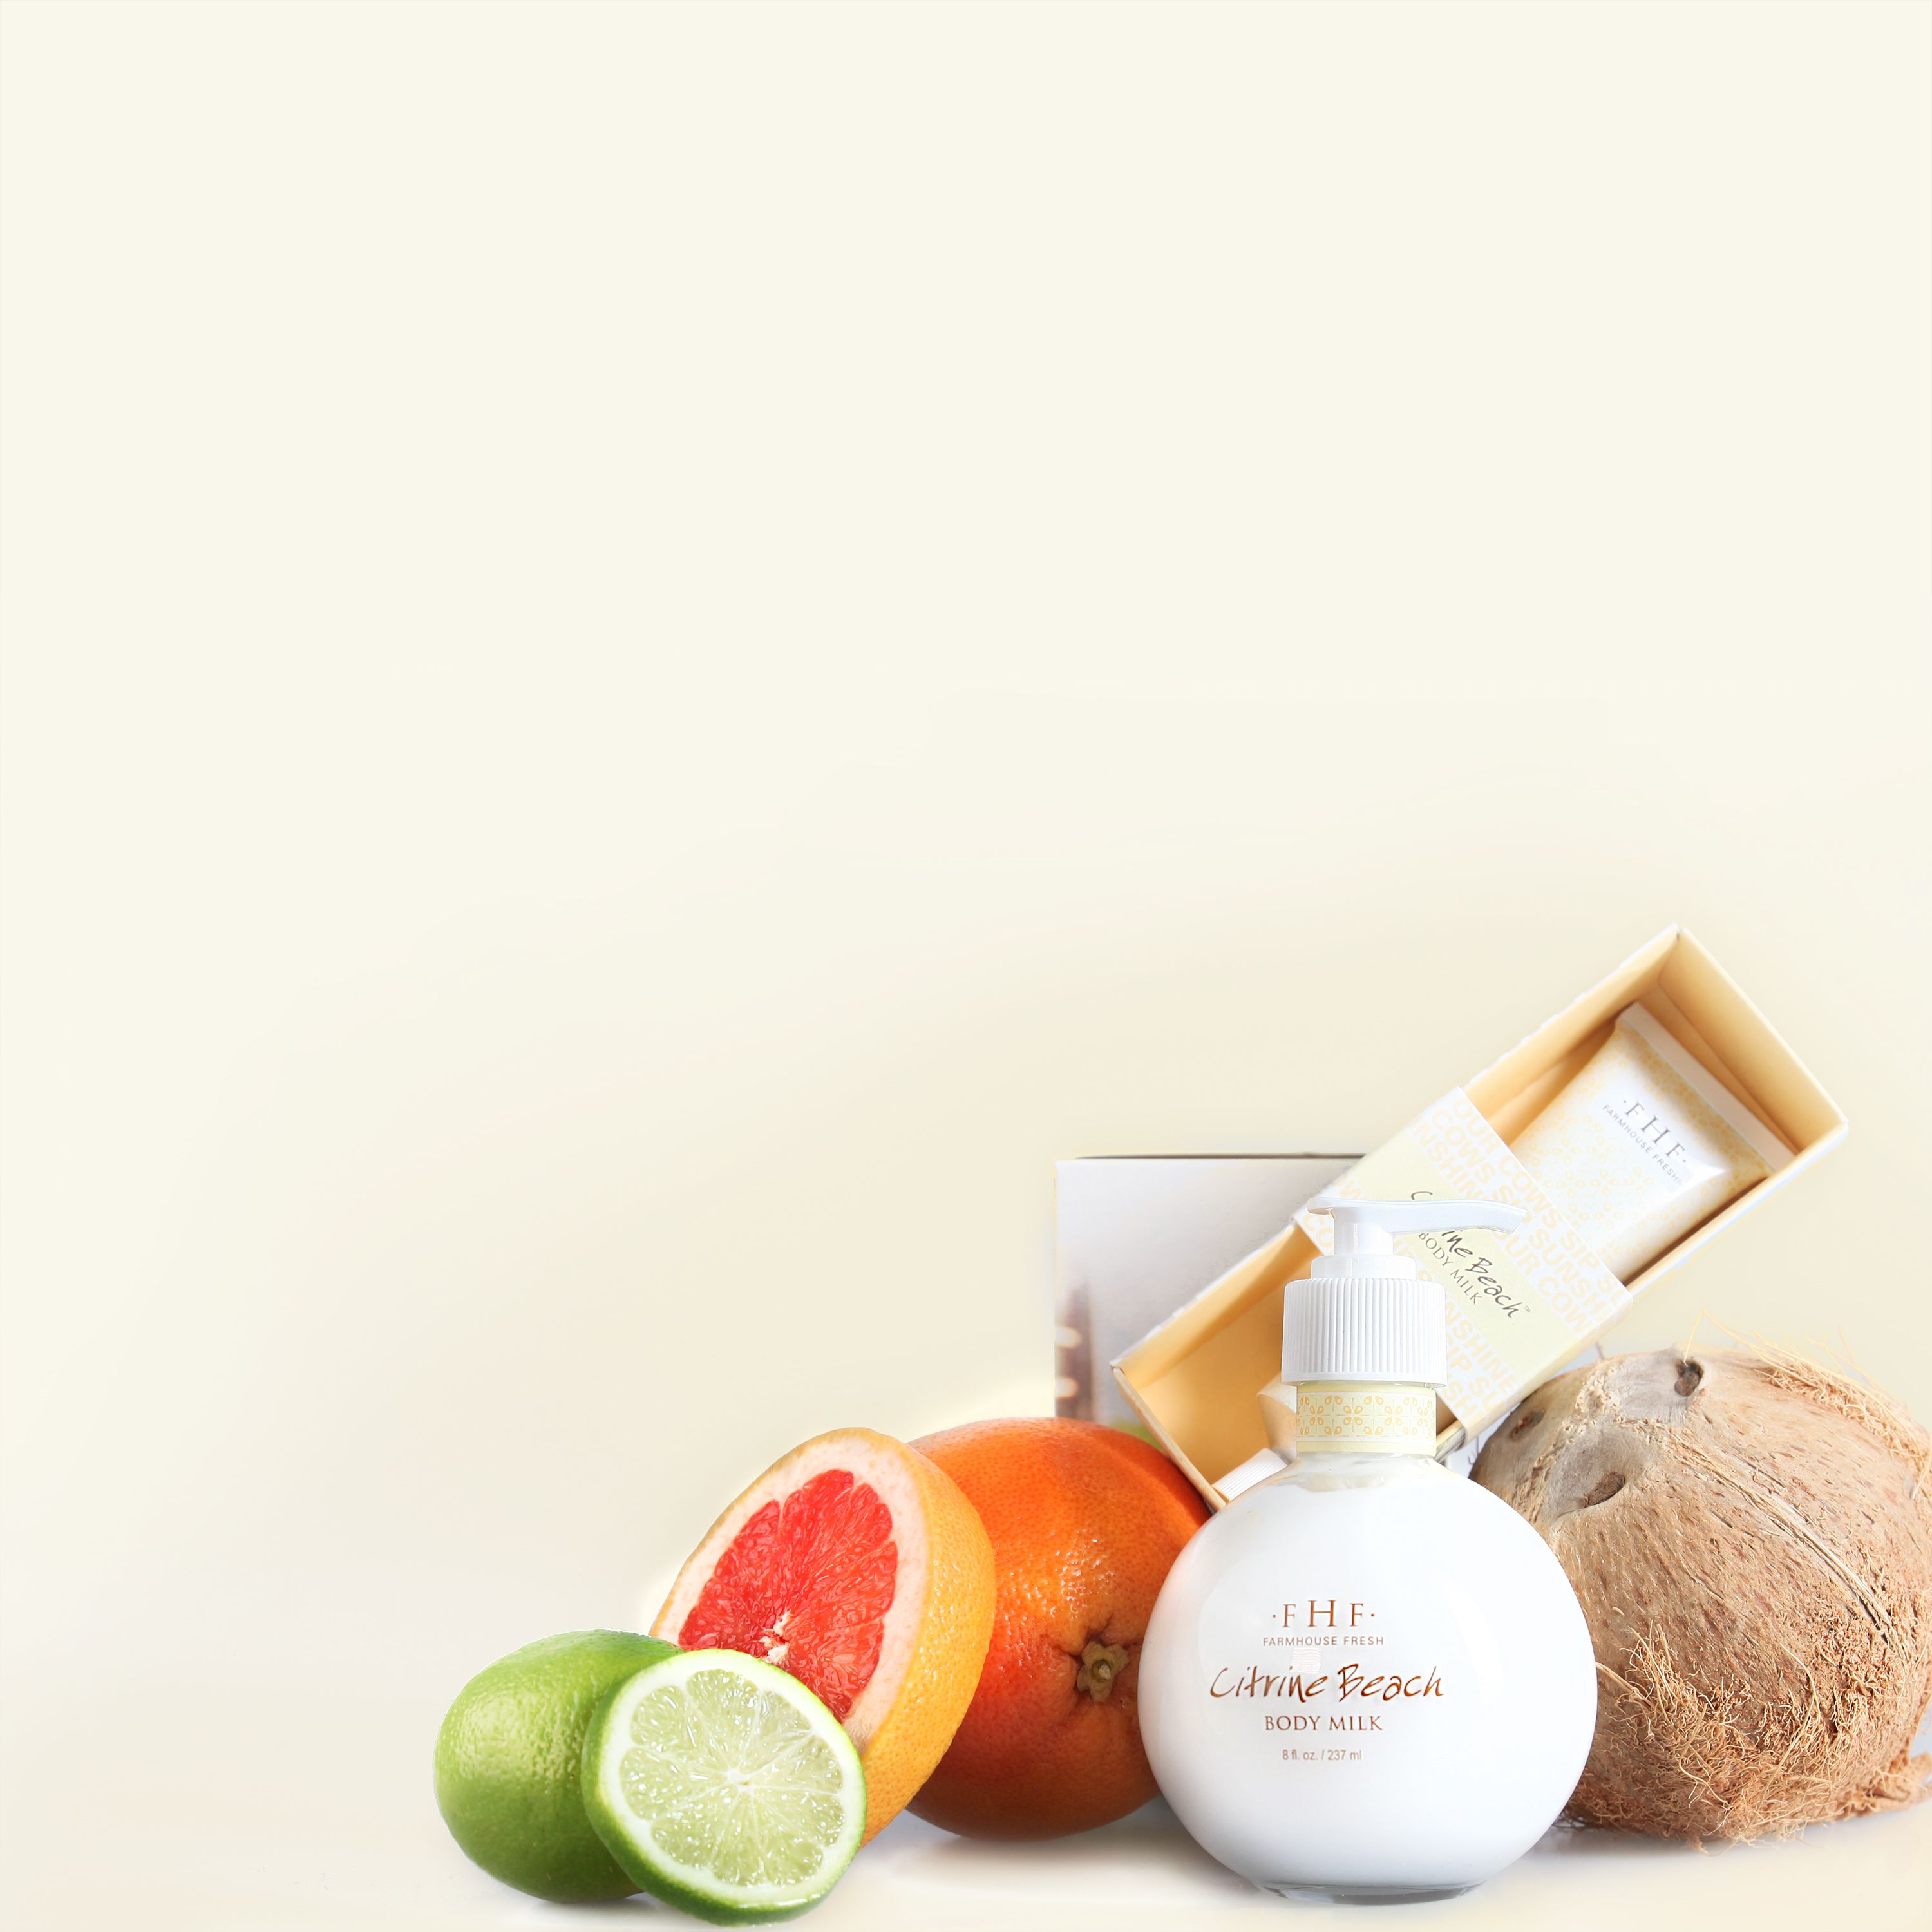 Sippin' On Summer With Citrine Beach Body Milk—chock Full